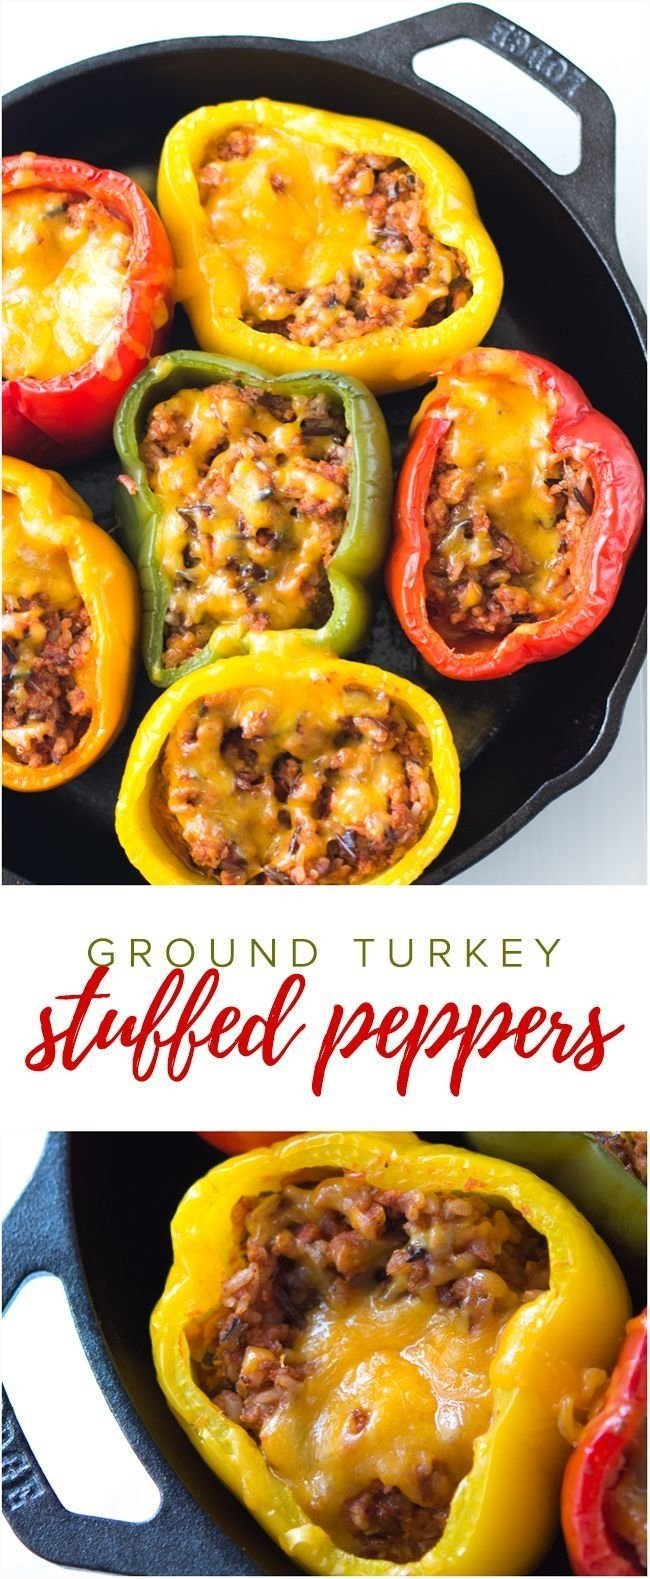 10 Pretty Quick And Simple Dinner Ideas 488 best healthy living recipes and tips images on pinterest 2020